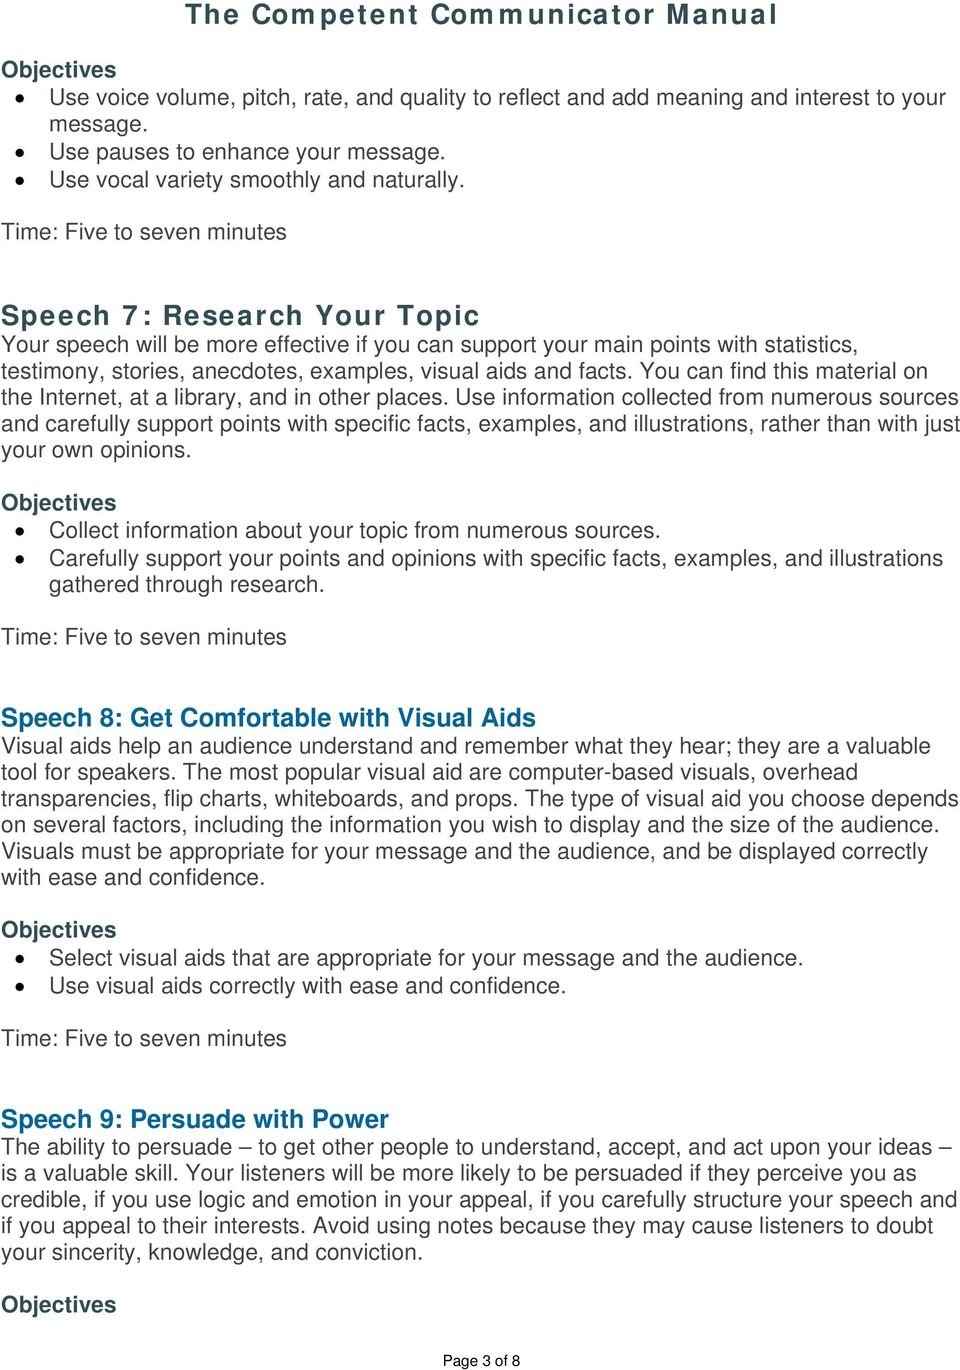 Speech 7: Research Your Topic Your speech will be more effective if you can support your main points with statistics, testimony, stories, anecdotes, examples, visual aids and facts.